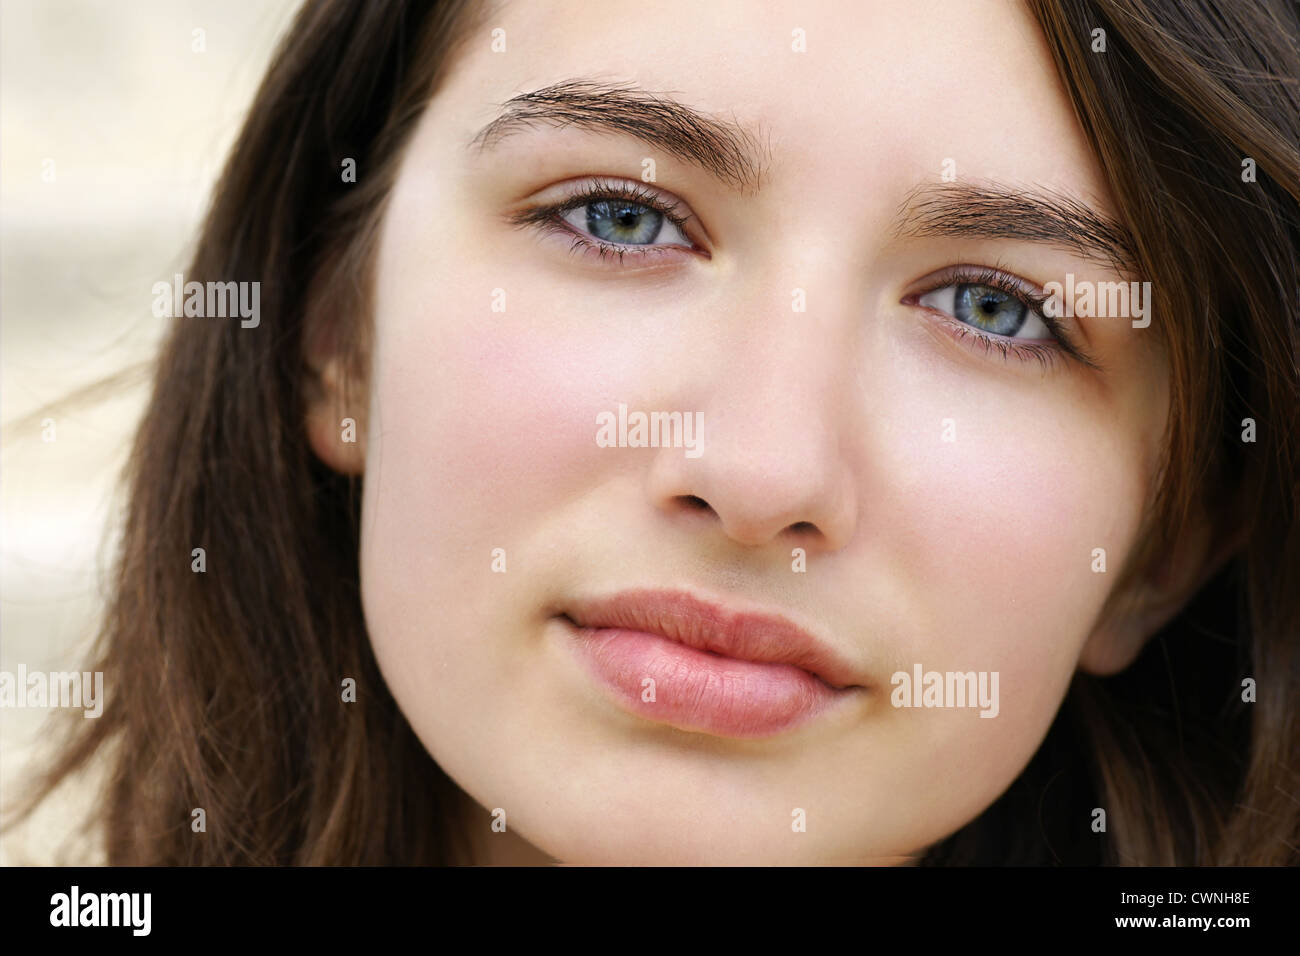 Portrait of serious beautiful fair skin young woman with pale blue eyes - Stock Image